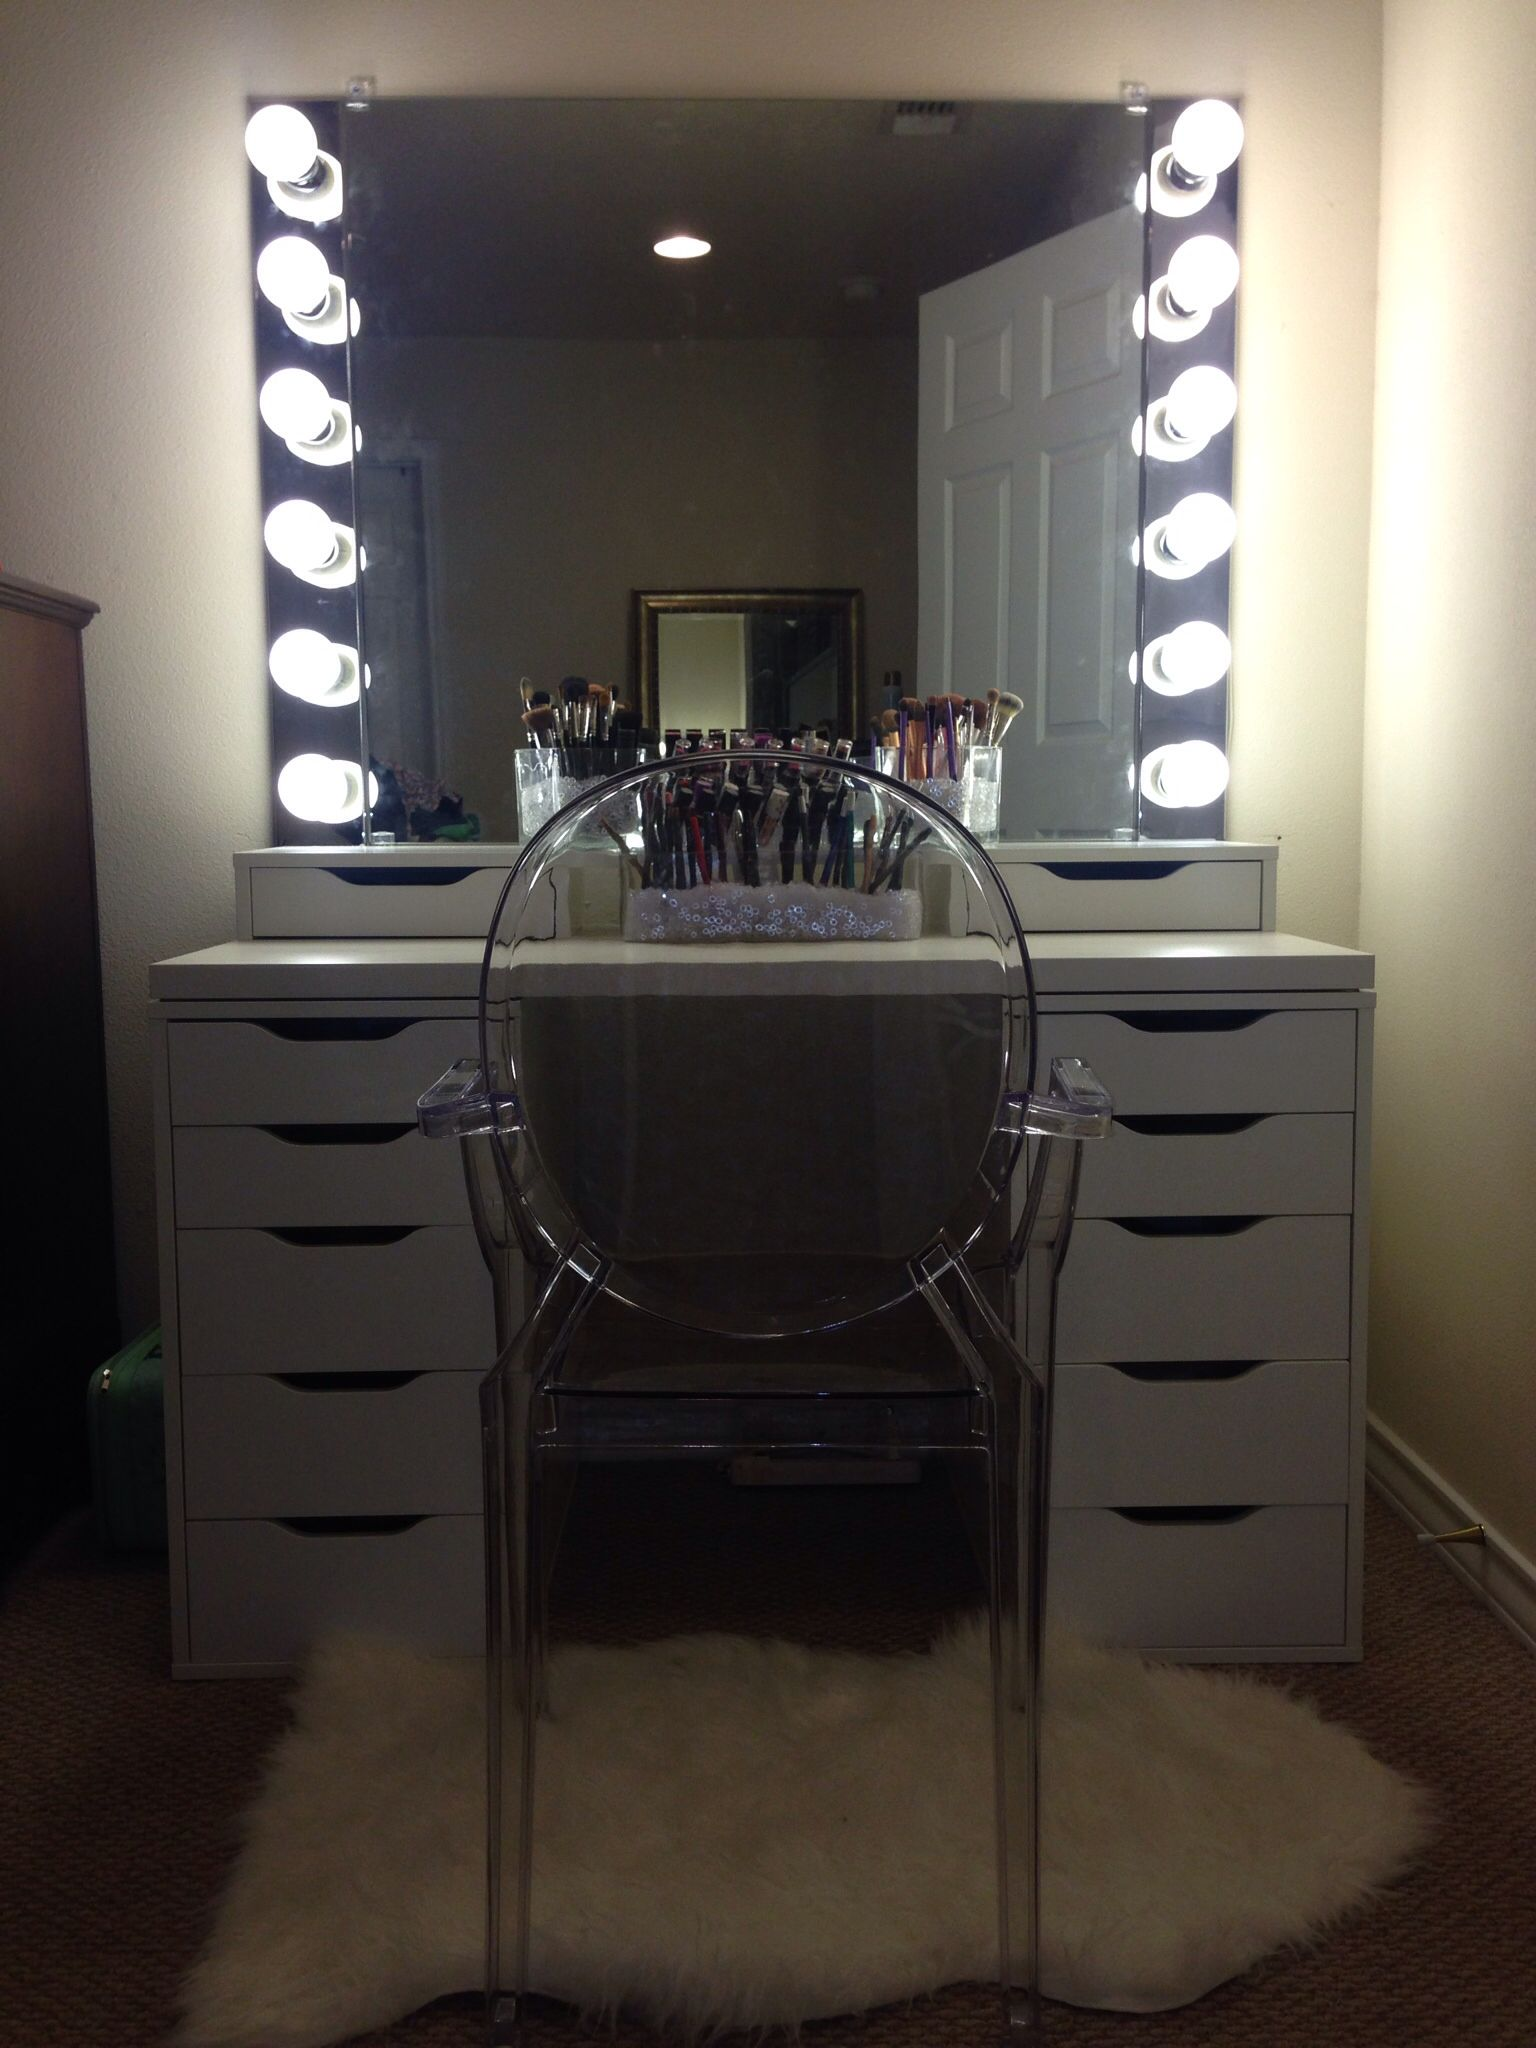 Vanity Mirror With Lights Ideas : DIY iKEA Vanity with lights! Beauty Pinterest Ikea vanity, Vanities and Lights